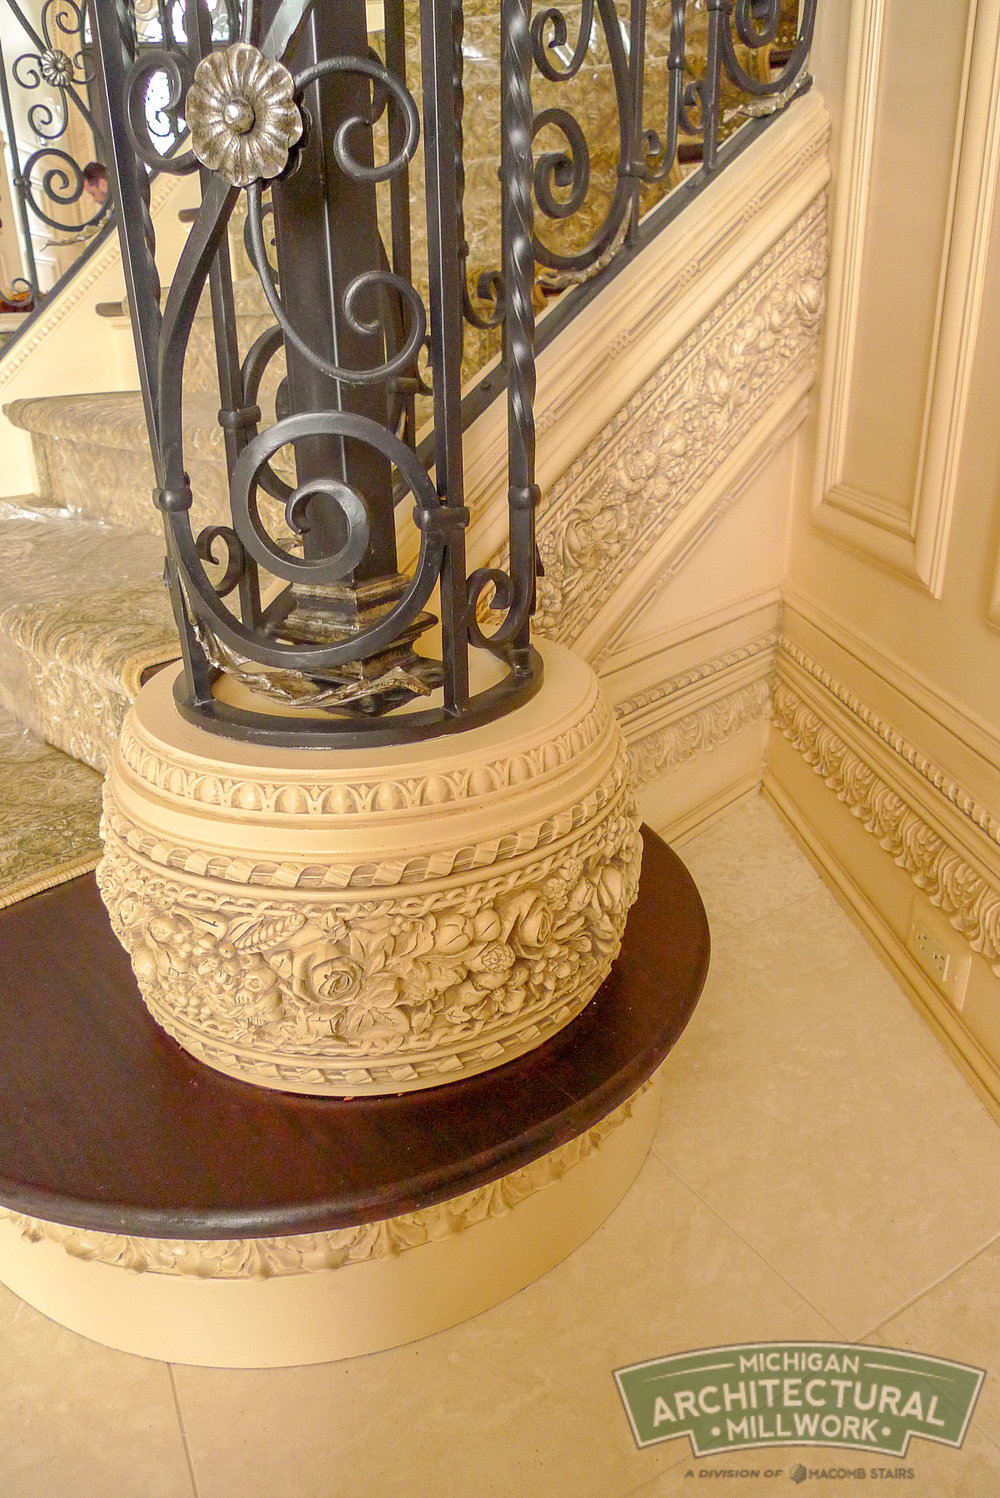 Michigan Architectural Millwork- Moulding and Millwork Photo-155.jpg